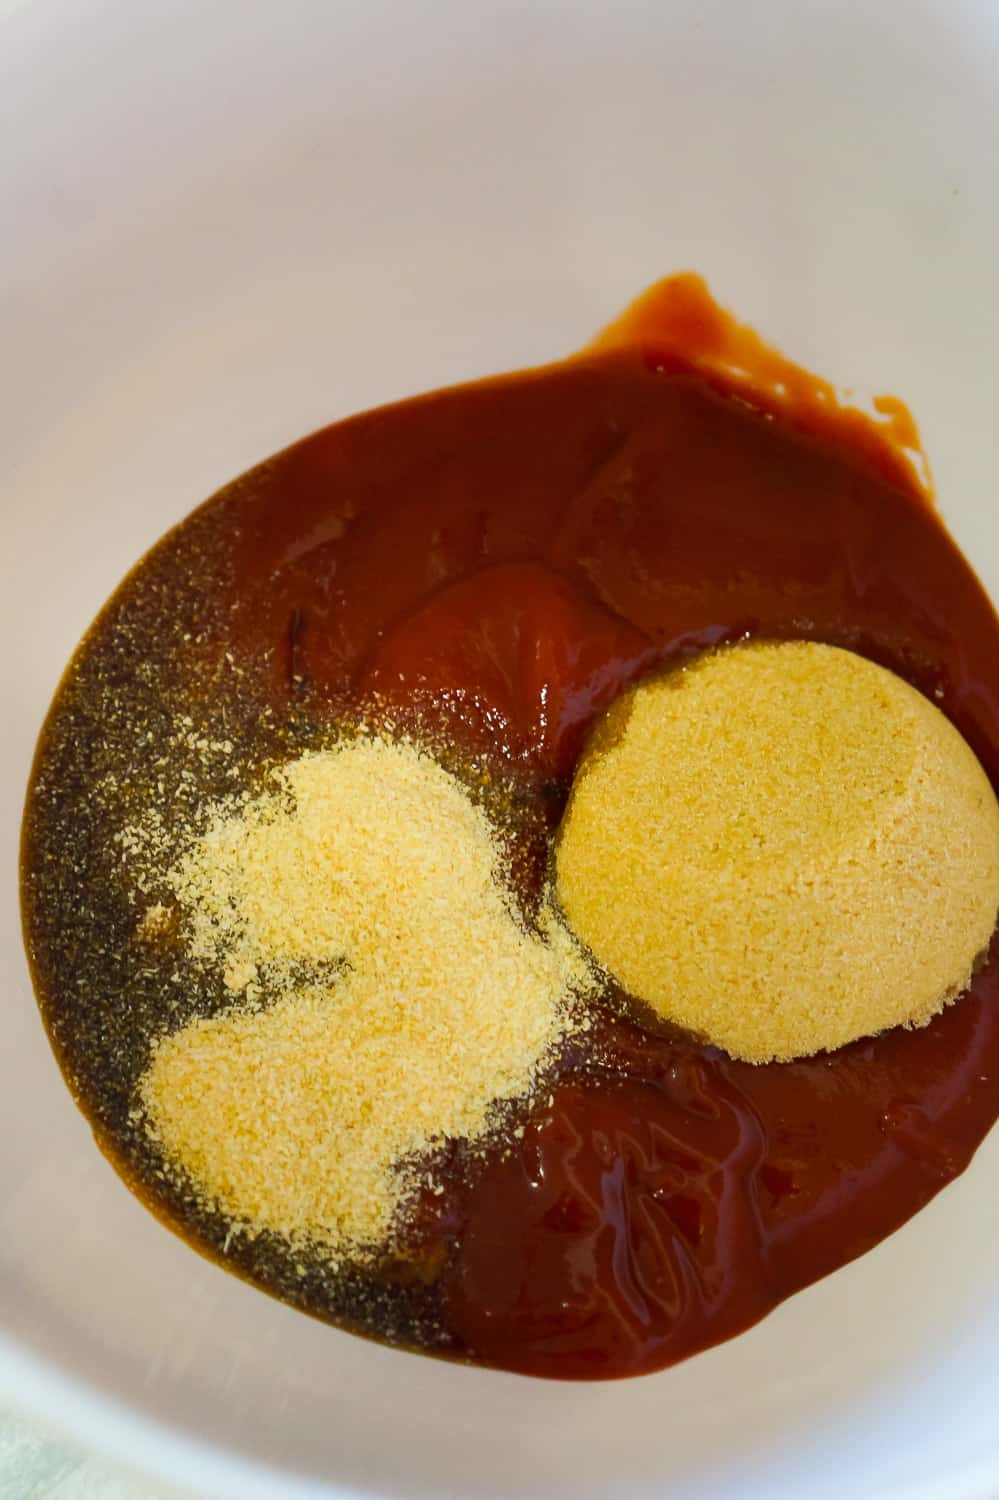 ketchup, Worcestershire sauce, onion powder, brown sugar, in a mixing bowl